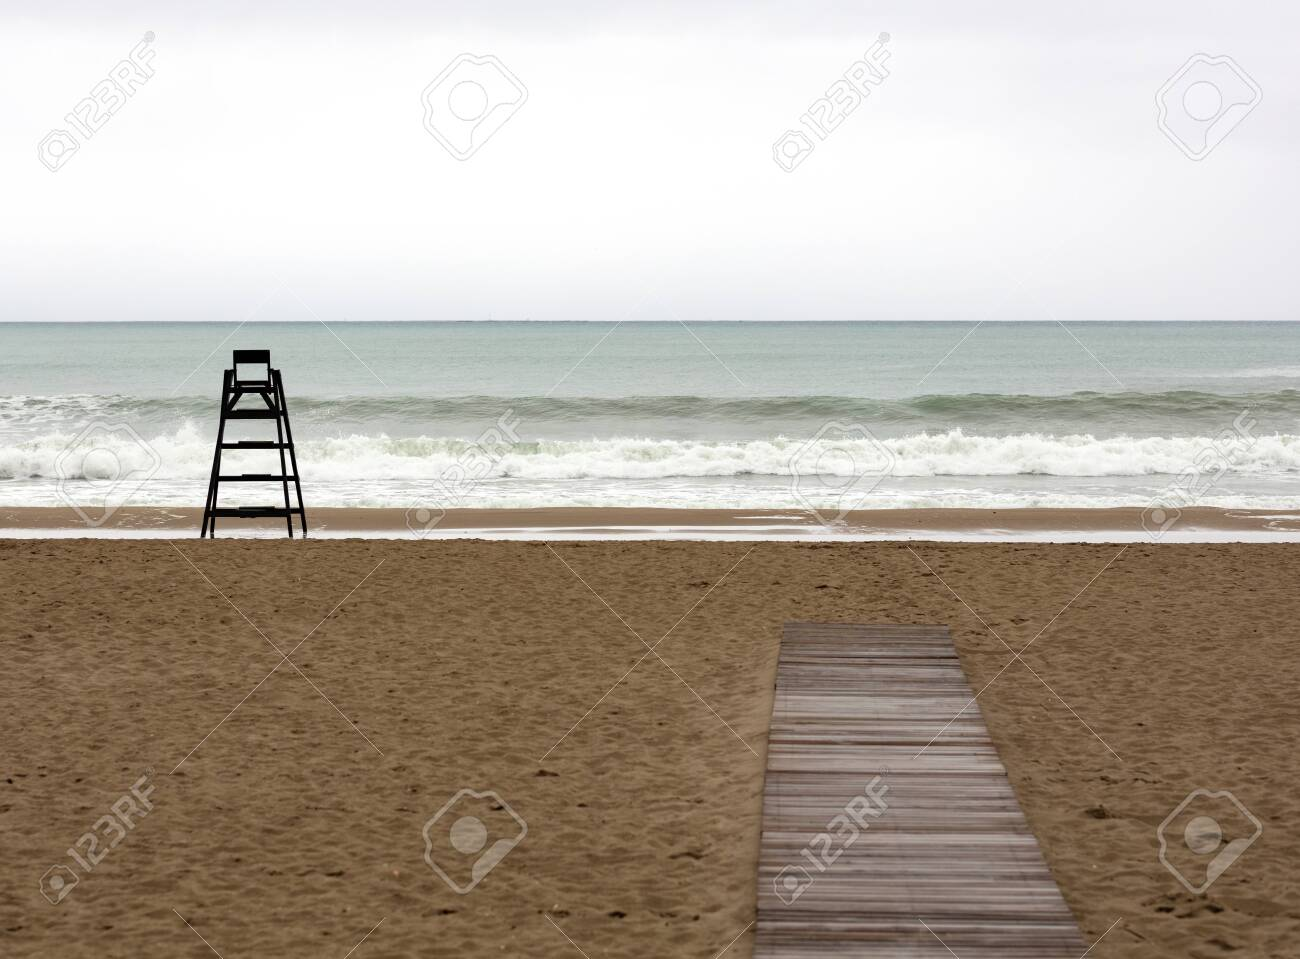 the beach during a cloudy day with a beach watchman chair alone on the sand and a wooden pathway - 123523682